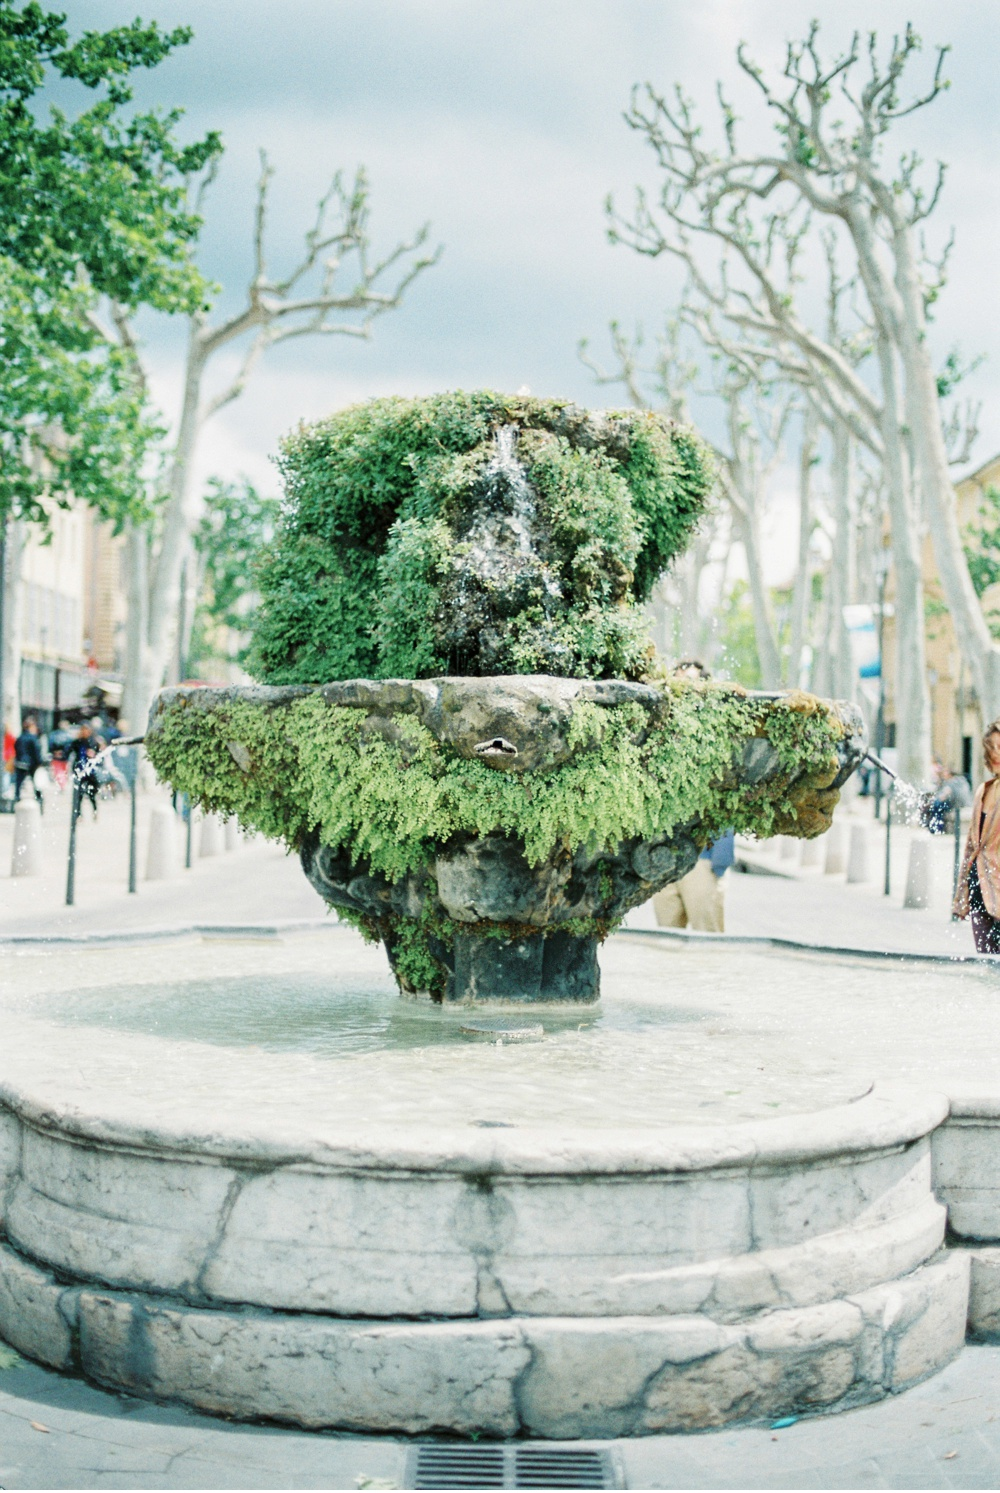 Provence_France_WeddingPhotographer©MadalinaSheldon_0071.jpg